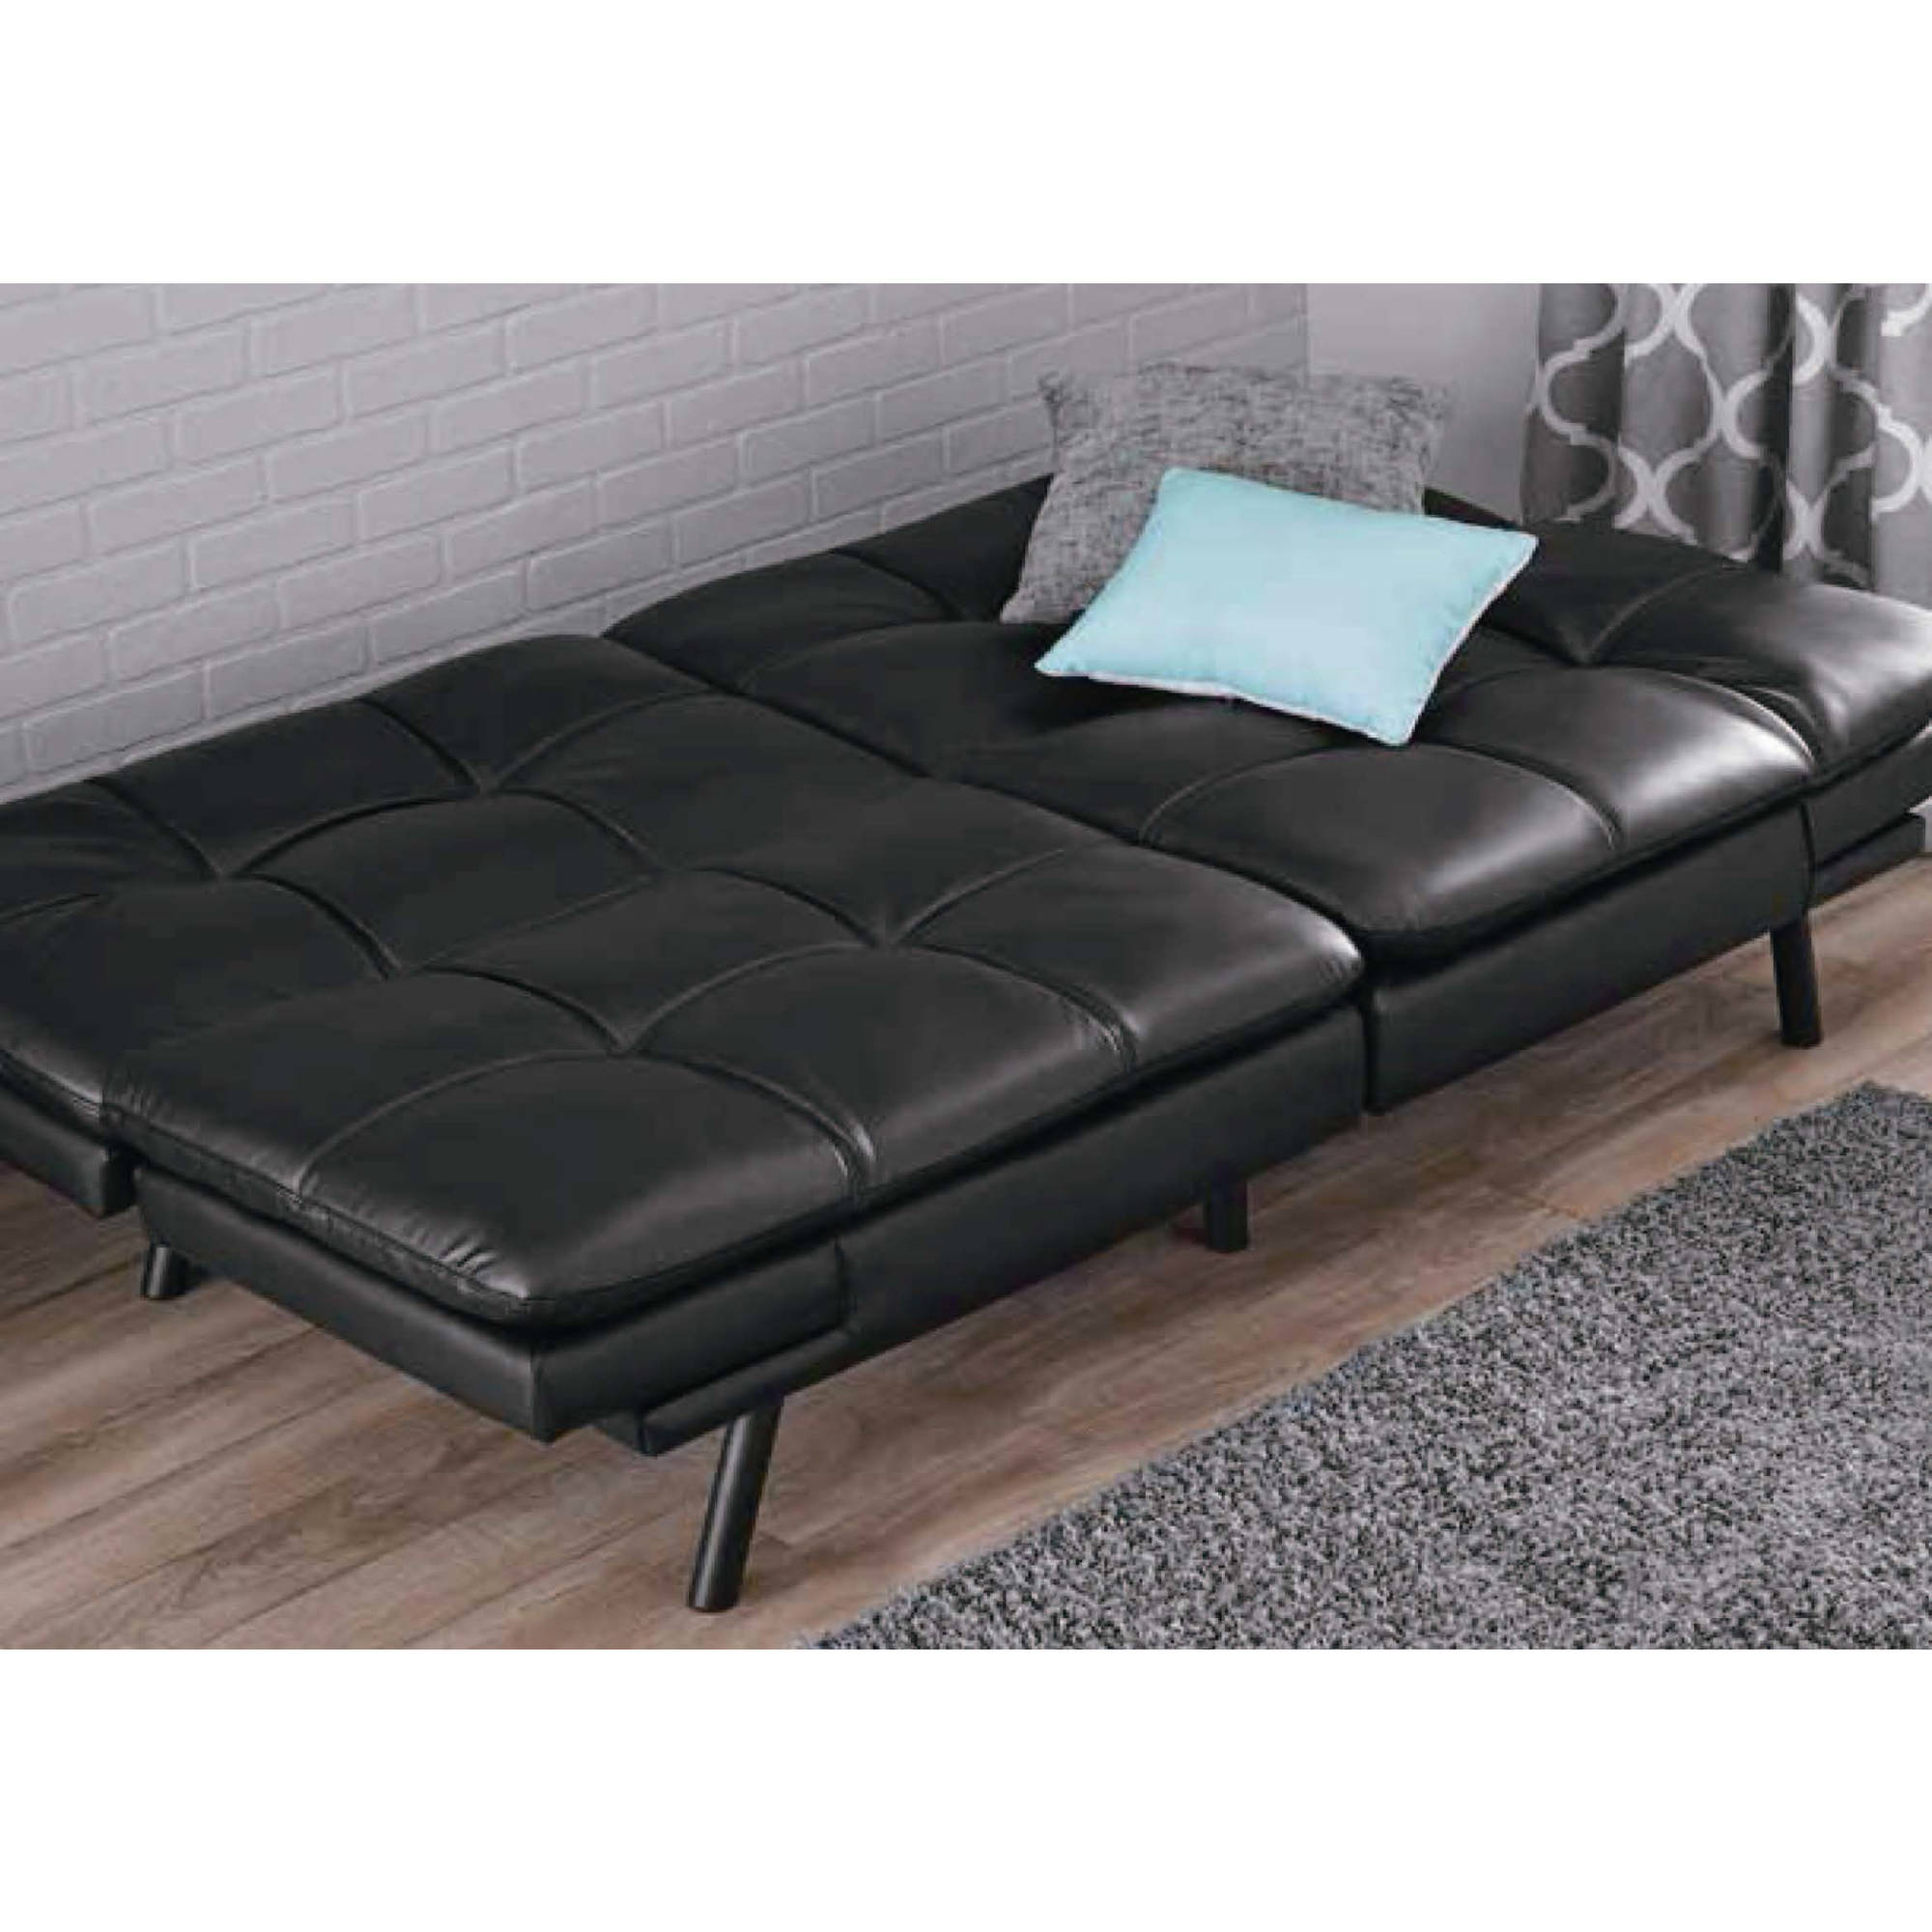 Memory Foam Mattress For Futon